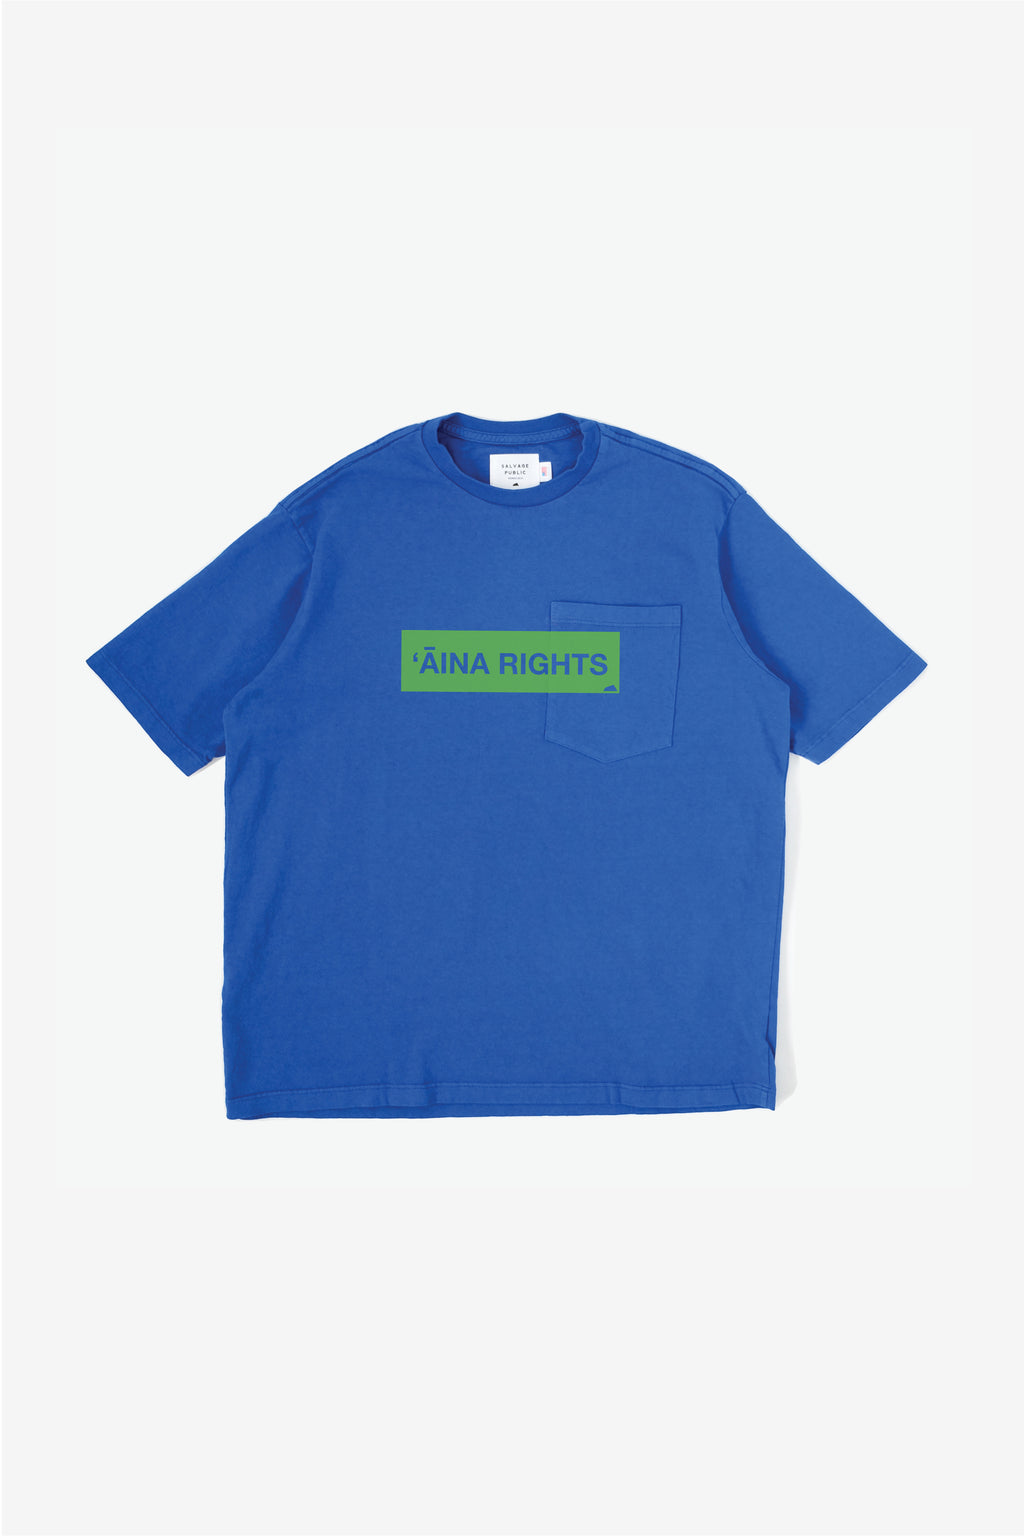 Oversized Pocket T-Shirt - 'Āina Rights - Royal Blue